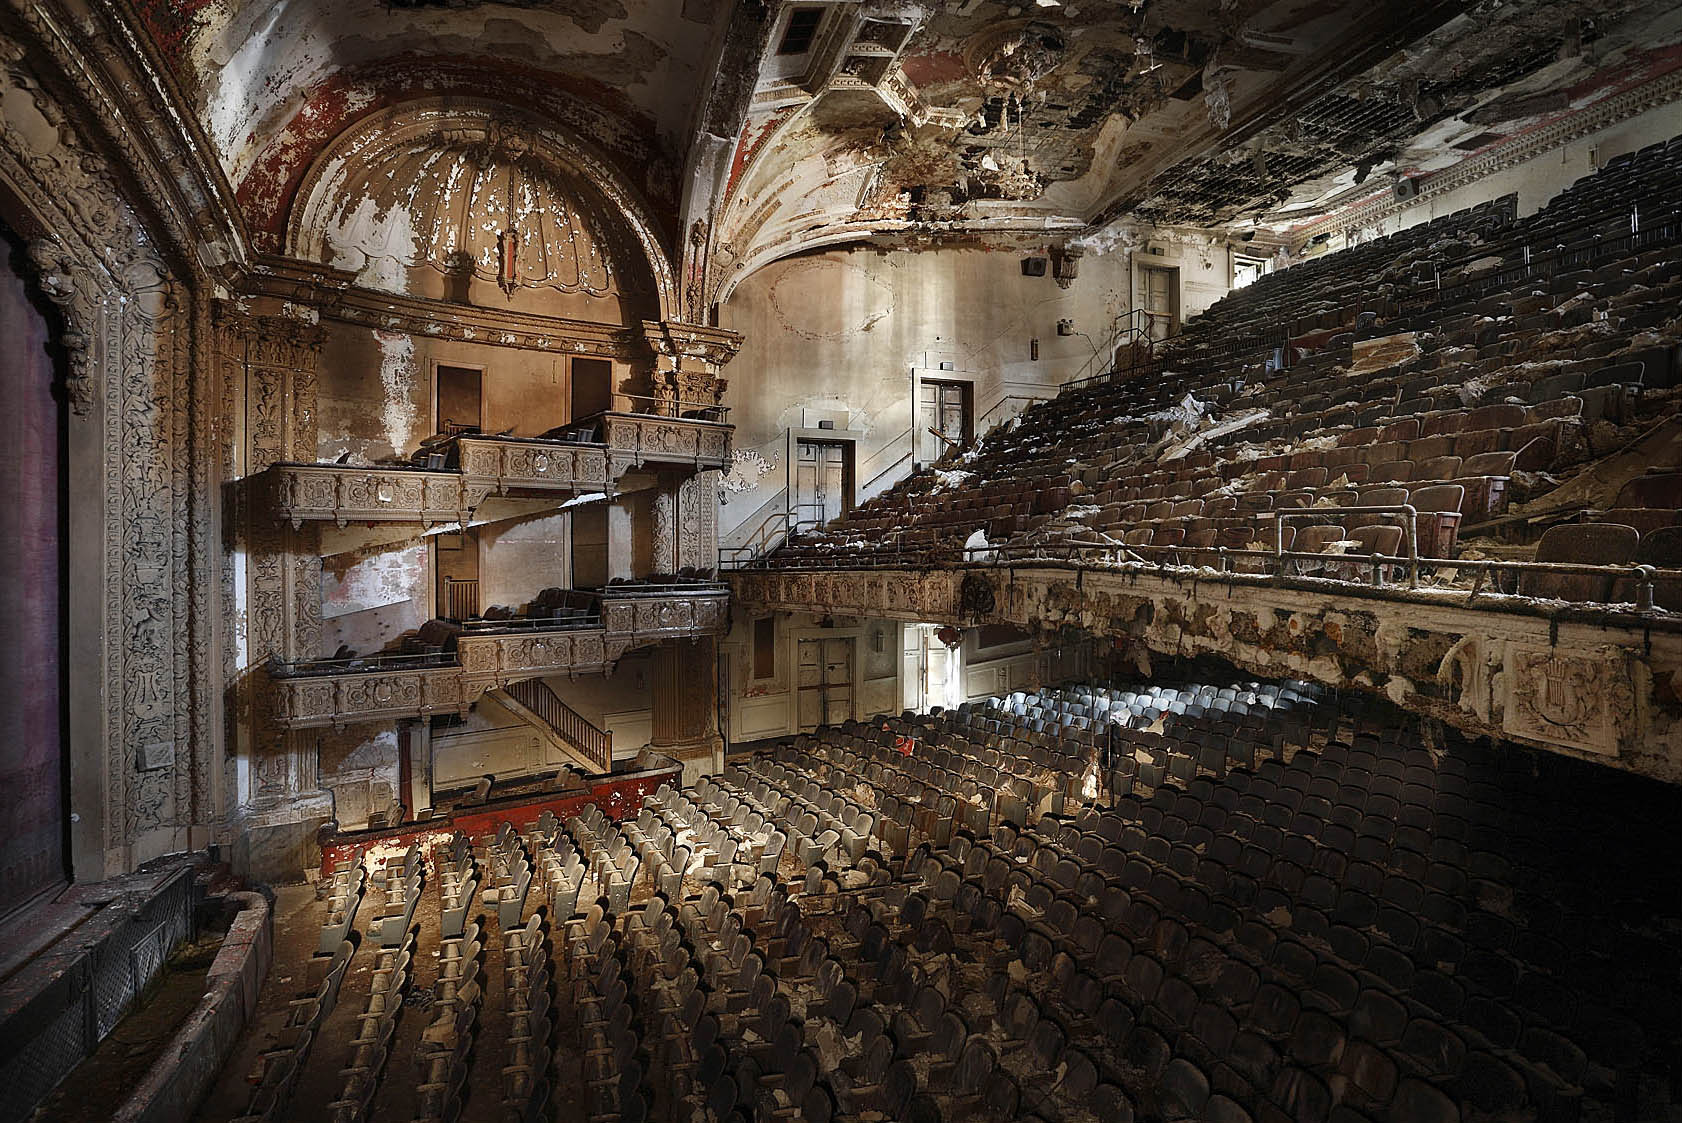 Haunting Images of Abandoned Places by Henk van Rensbergen ...